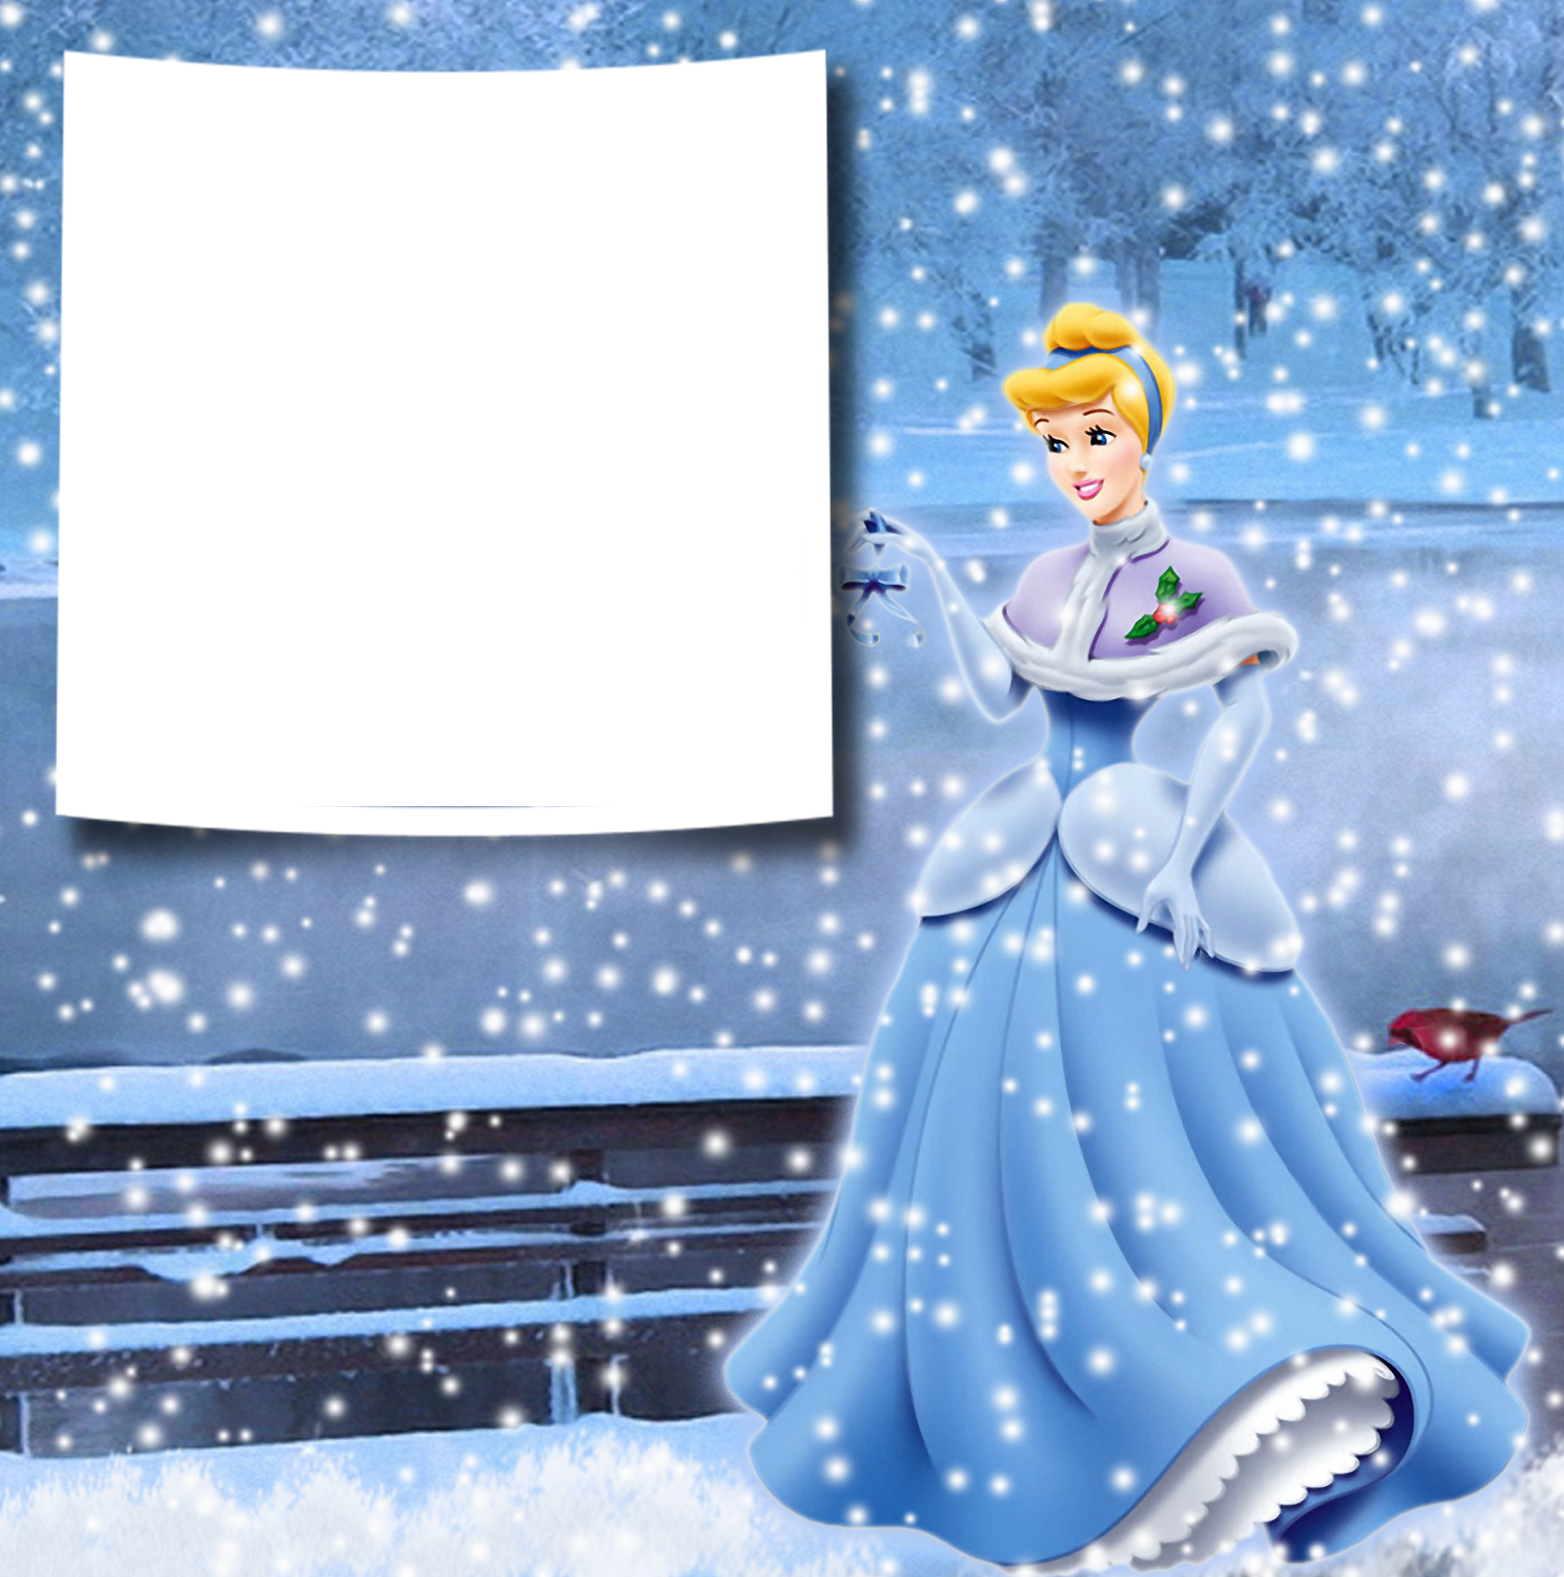 Transparent Christmas Winter Princess Cinderella PNG Photo.